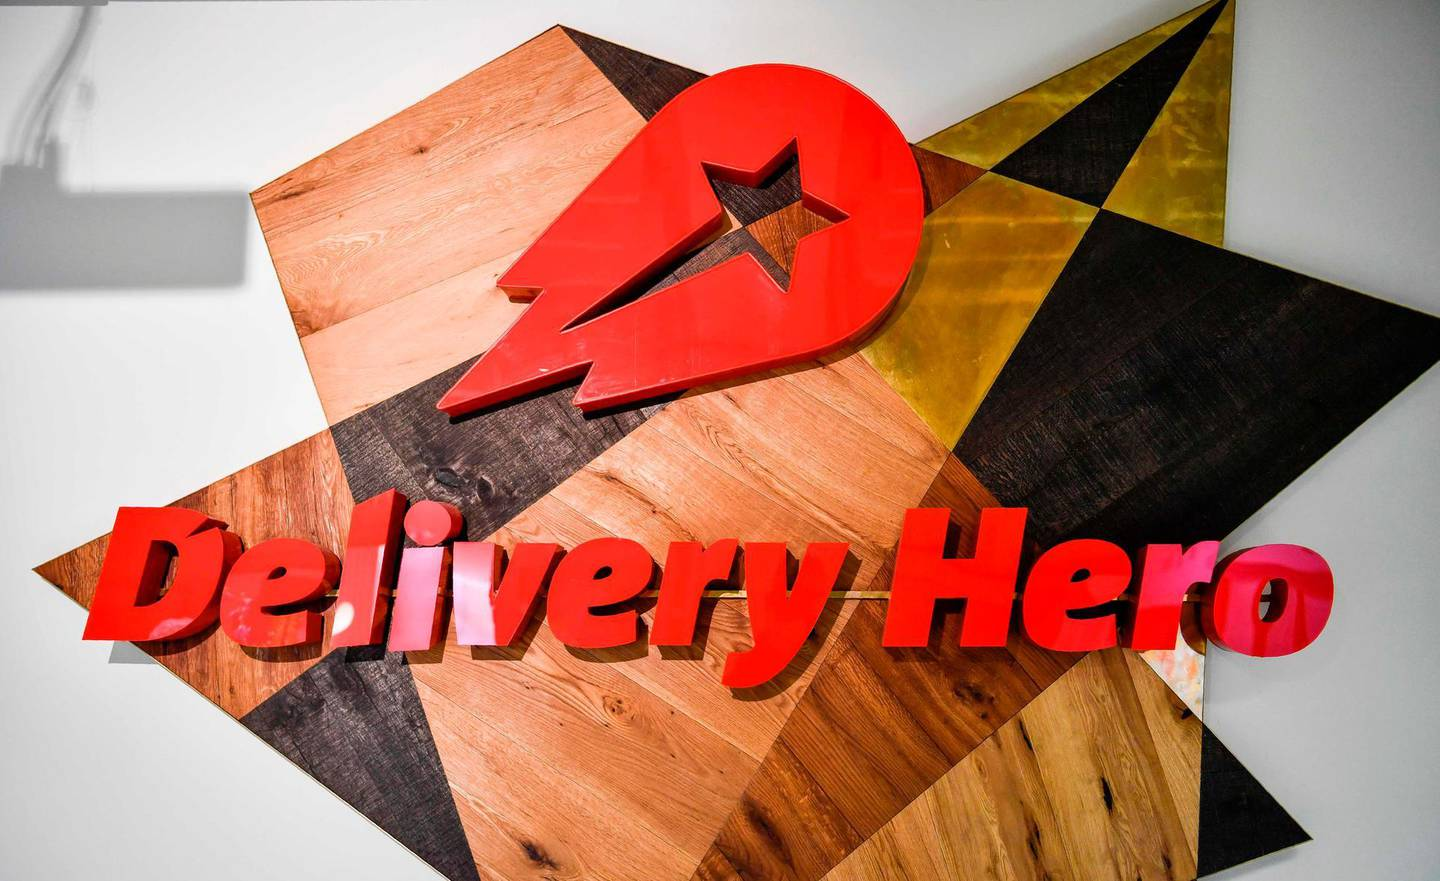 (FILES) This file photo taken on June 27, 2017 shows a logo in a lounge area of the global headquarters of online food ordering and delivery giant Delivery Hero in Berlin. German takeaway giant Delivery Hero on December 13, 2019 said it had agreed to buy South Korea's largest food delivery app Woowa in a 3.6 billion euro ($4 billion) deal aimed at beefing up its presence in Asia. / AFP / John MACDOUGALL